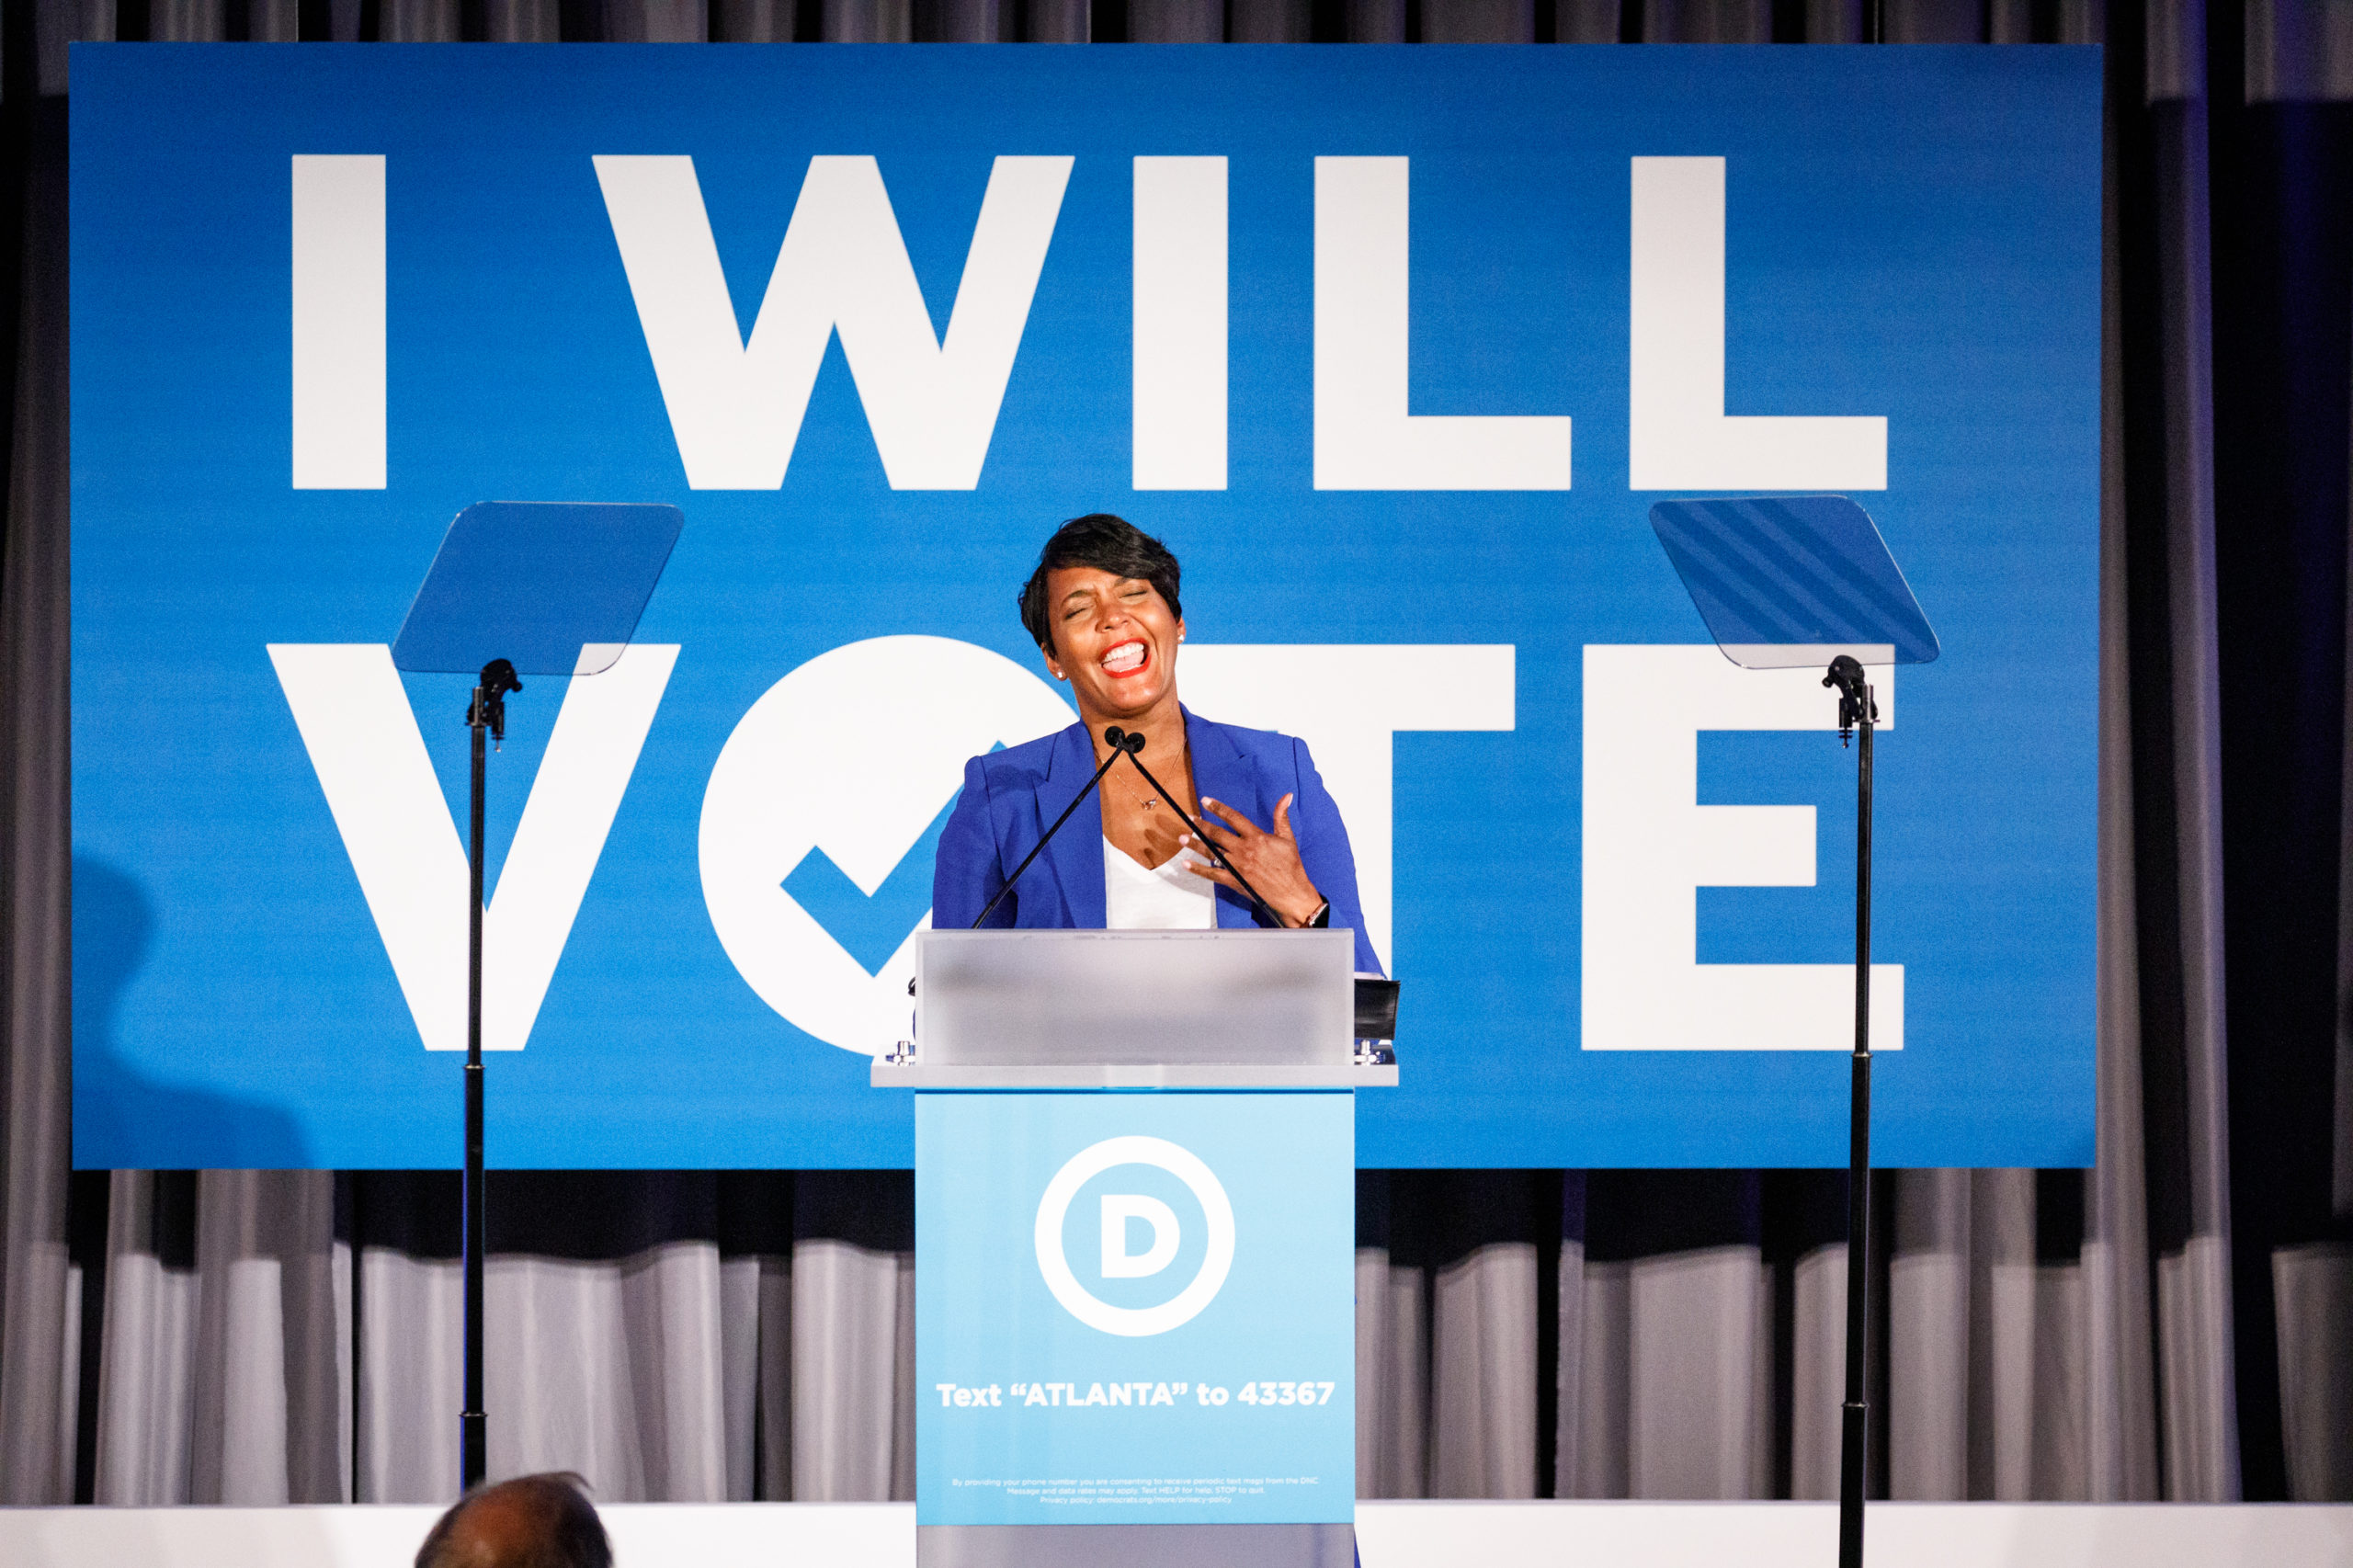 ATLANTA, GA - JUNE 06: Atlanta Mayor Keisha Lance Bottoms speaks to a crowd at a Democratic National Committee event at Flourish on June 6, 2019 in Atlanta, Georgia. The DNC held a gala at an event space in the Buckhead area of Atlanta to raise money for the DNCs IWillVote program, which is aimed at registering voters. (Photo by Dustin Chambers/Getty Images)